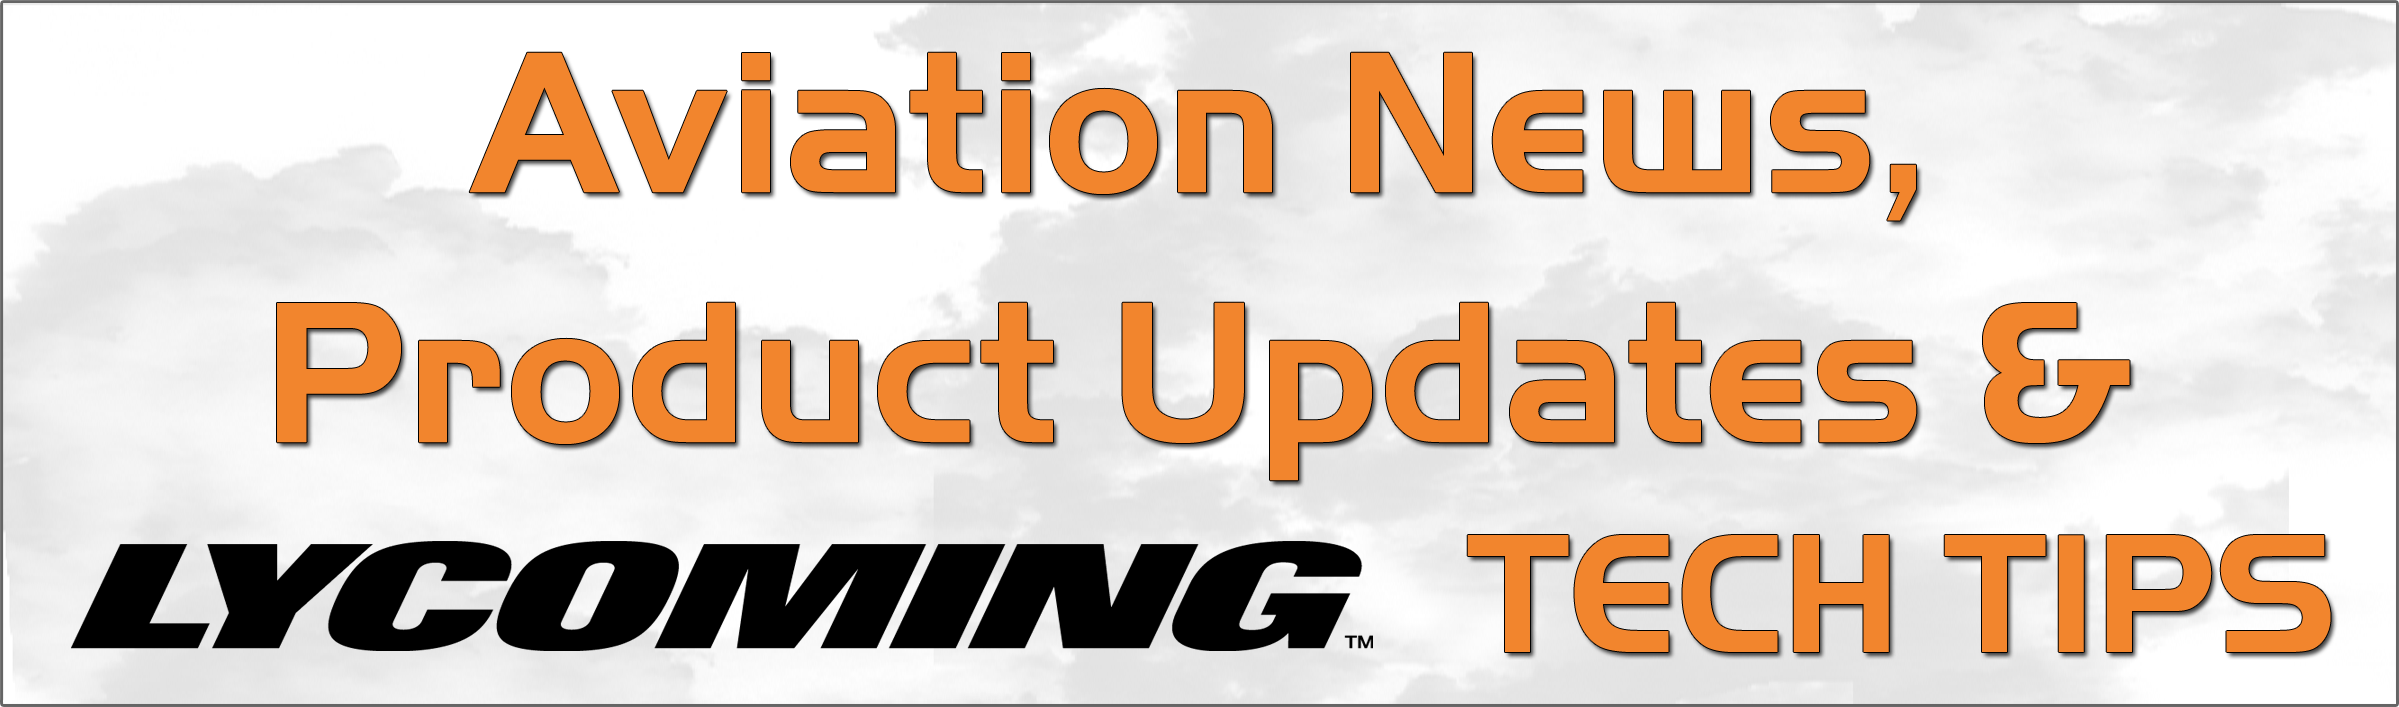 Aviation News & Product Updates